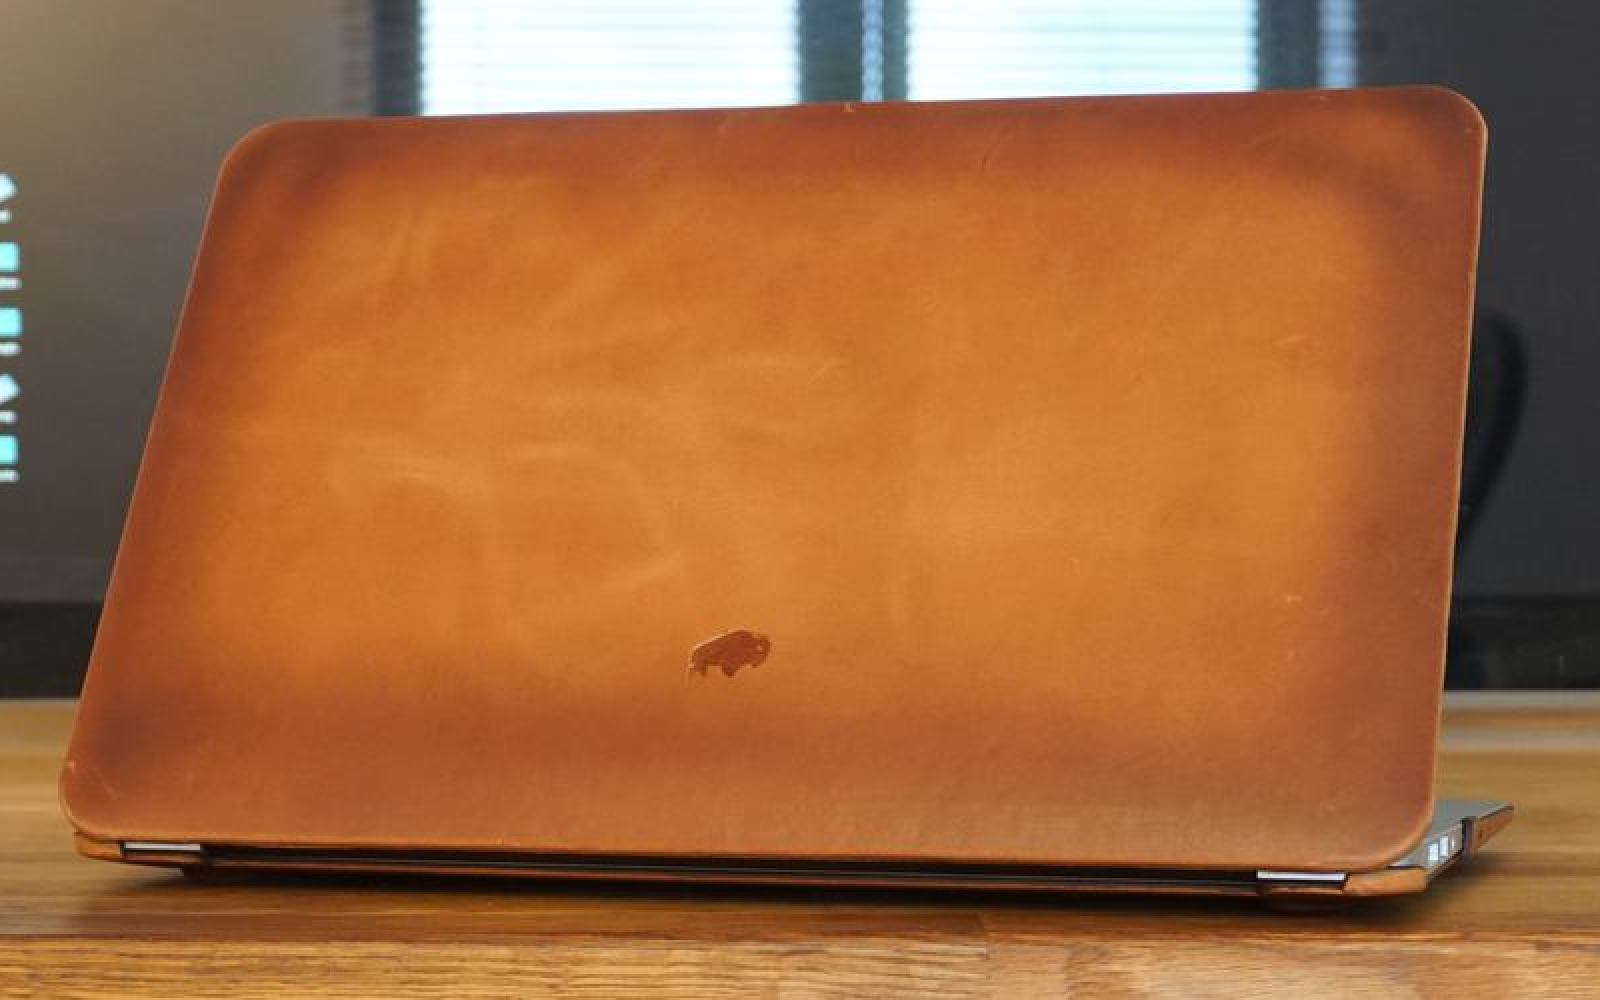 Review: Burkley hardshell leather MacBook Air case, premium leather at a premium price